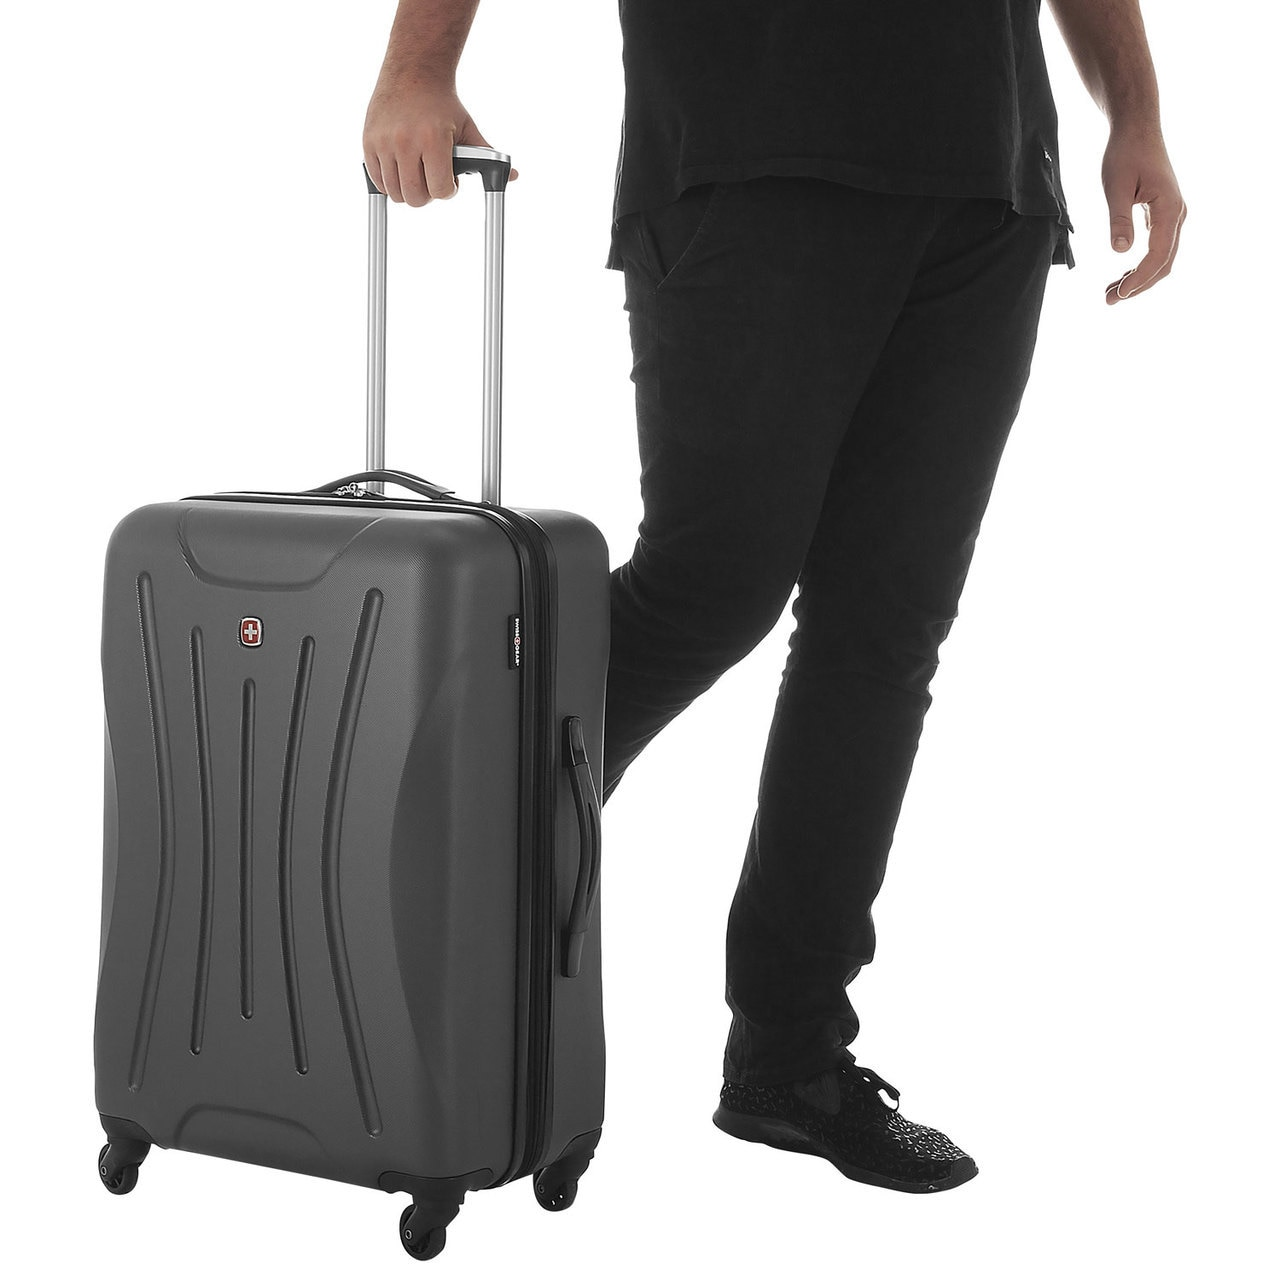 7d25af69eb10 Swissgear Fiesta Collection 24 Inch Expandable Spinner Luggage Case -  Charcoal